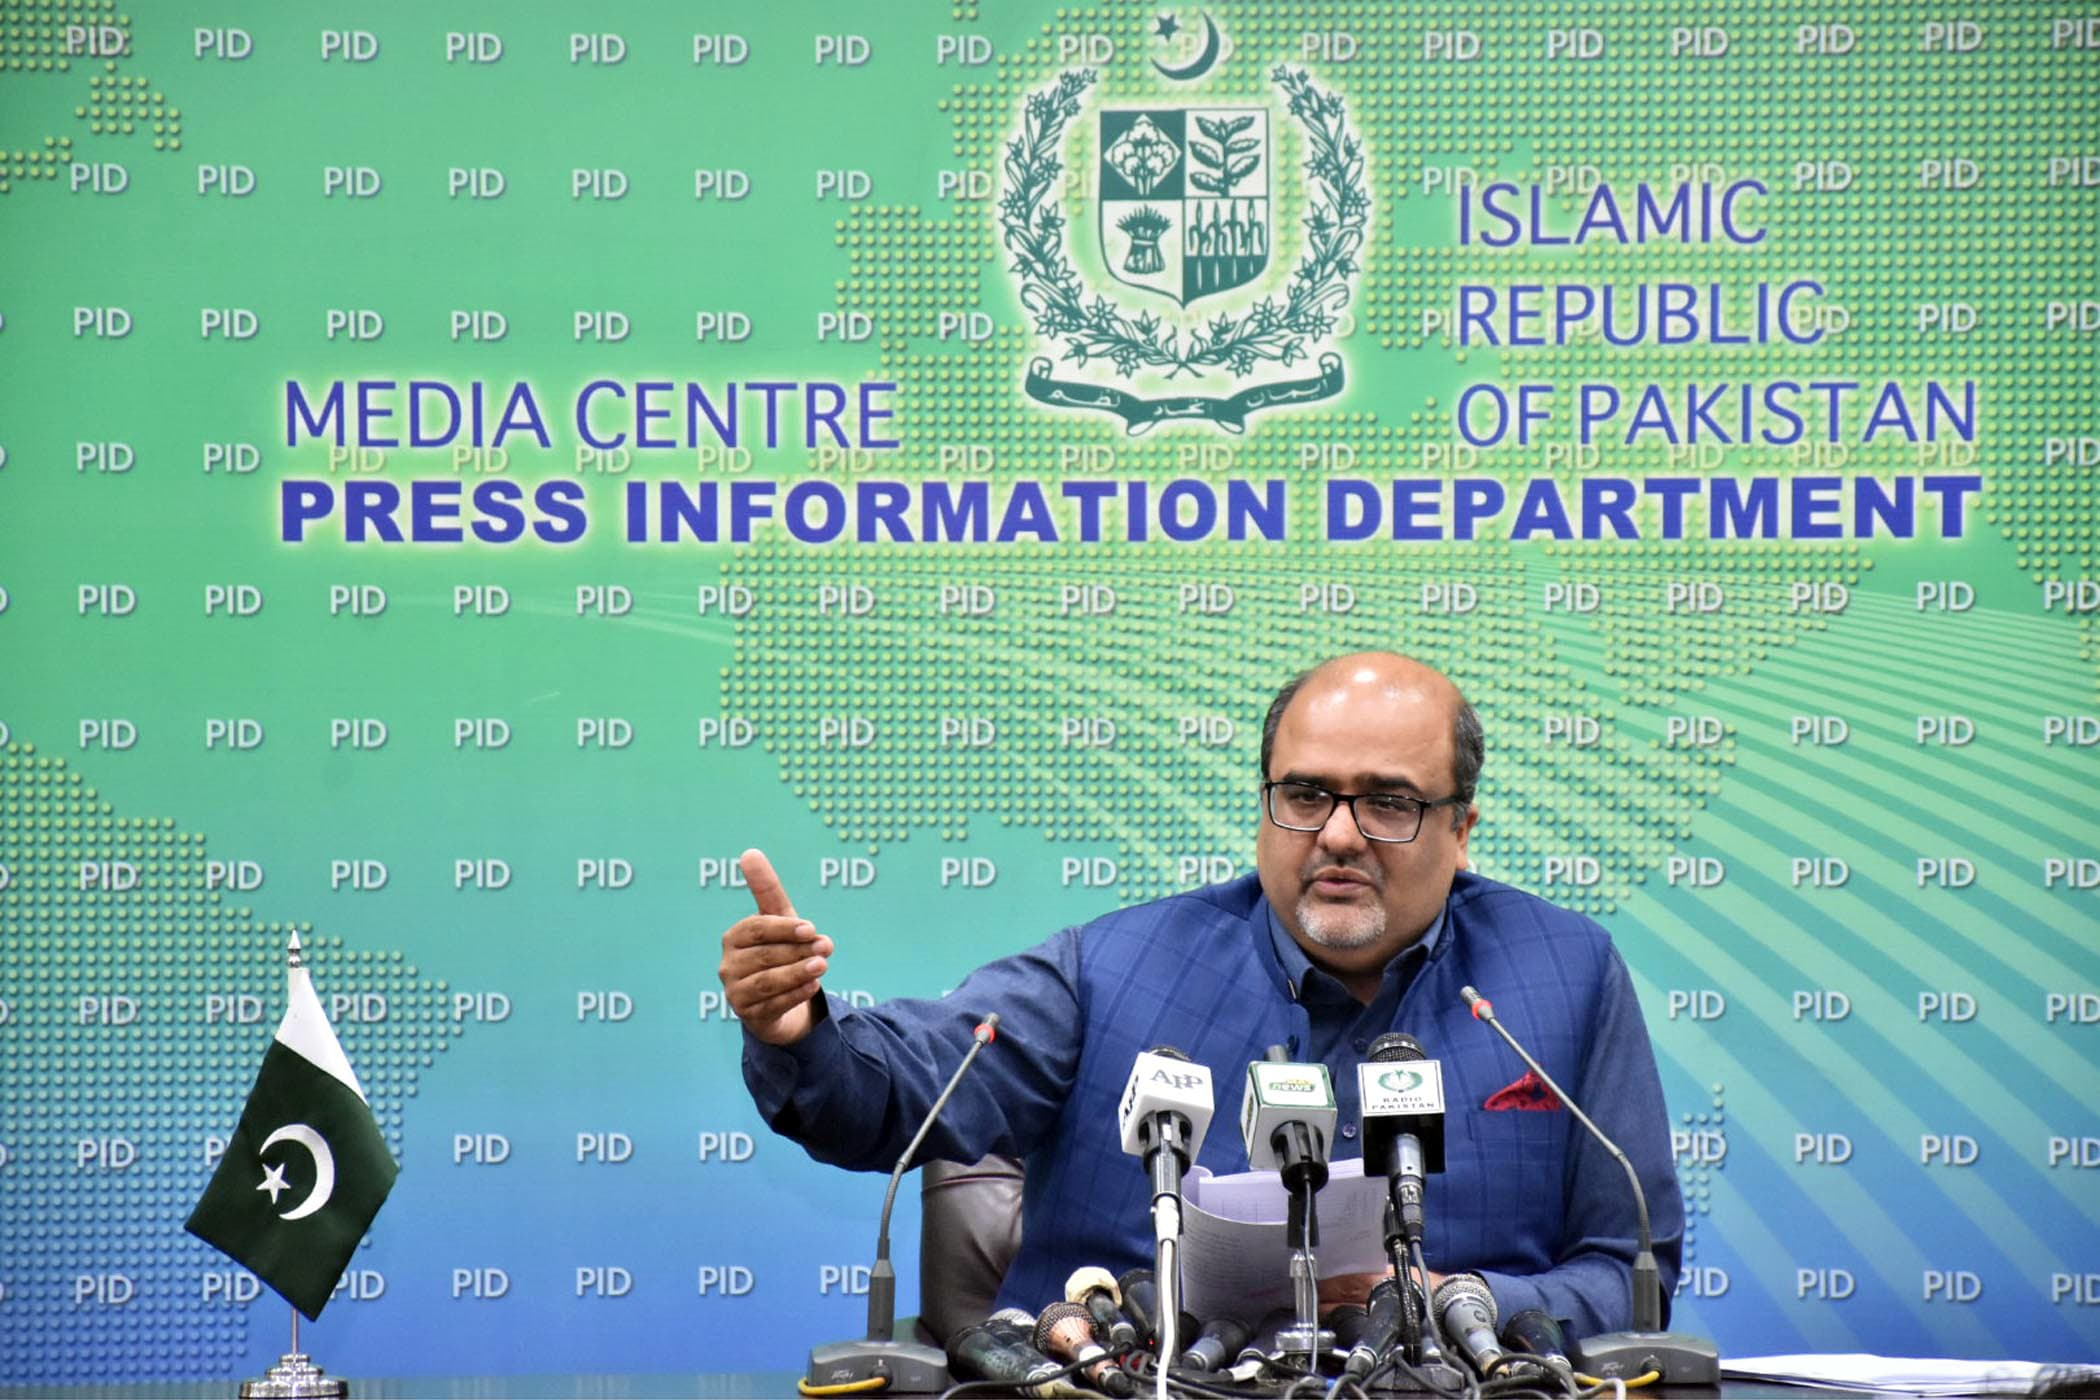 Special Assistant to the Prime Minister on Accountability Shahzad Akbar addressing a press conference in Islamabad on Friday. — PID